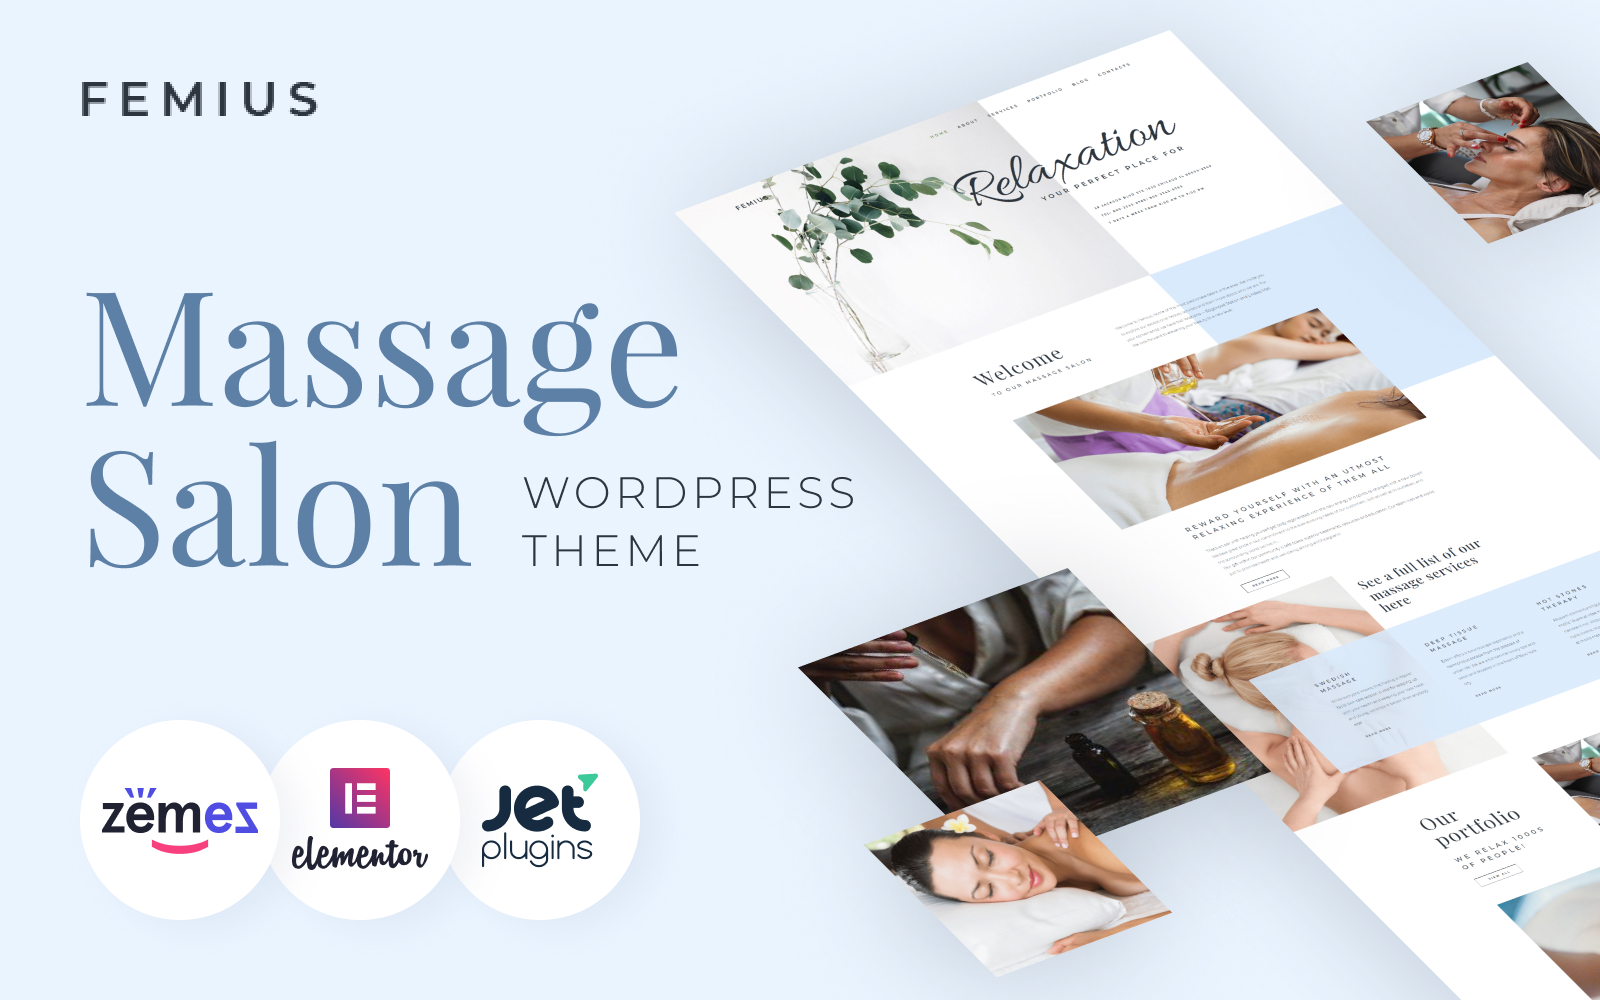 Responsywny motyw WordPress Femius - Massage Salon Ready-to-Use Minimal Elementor #82565